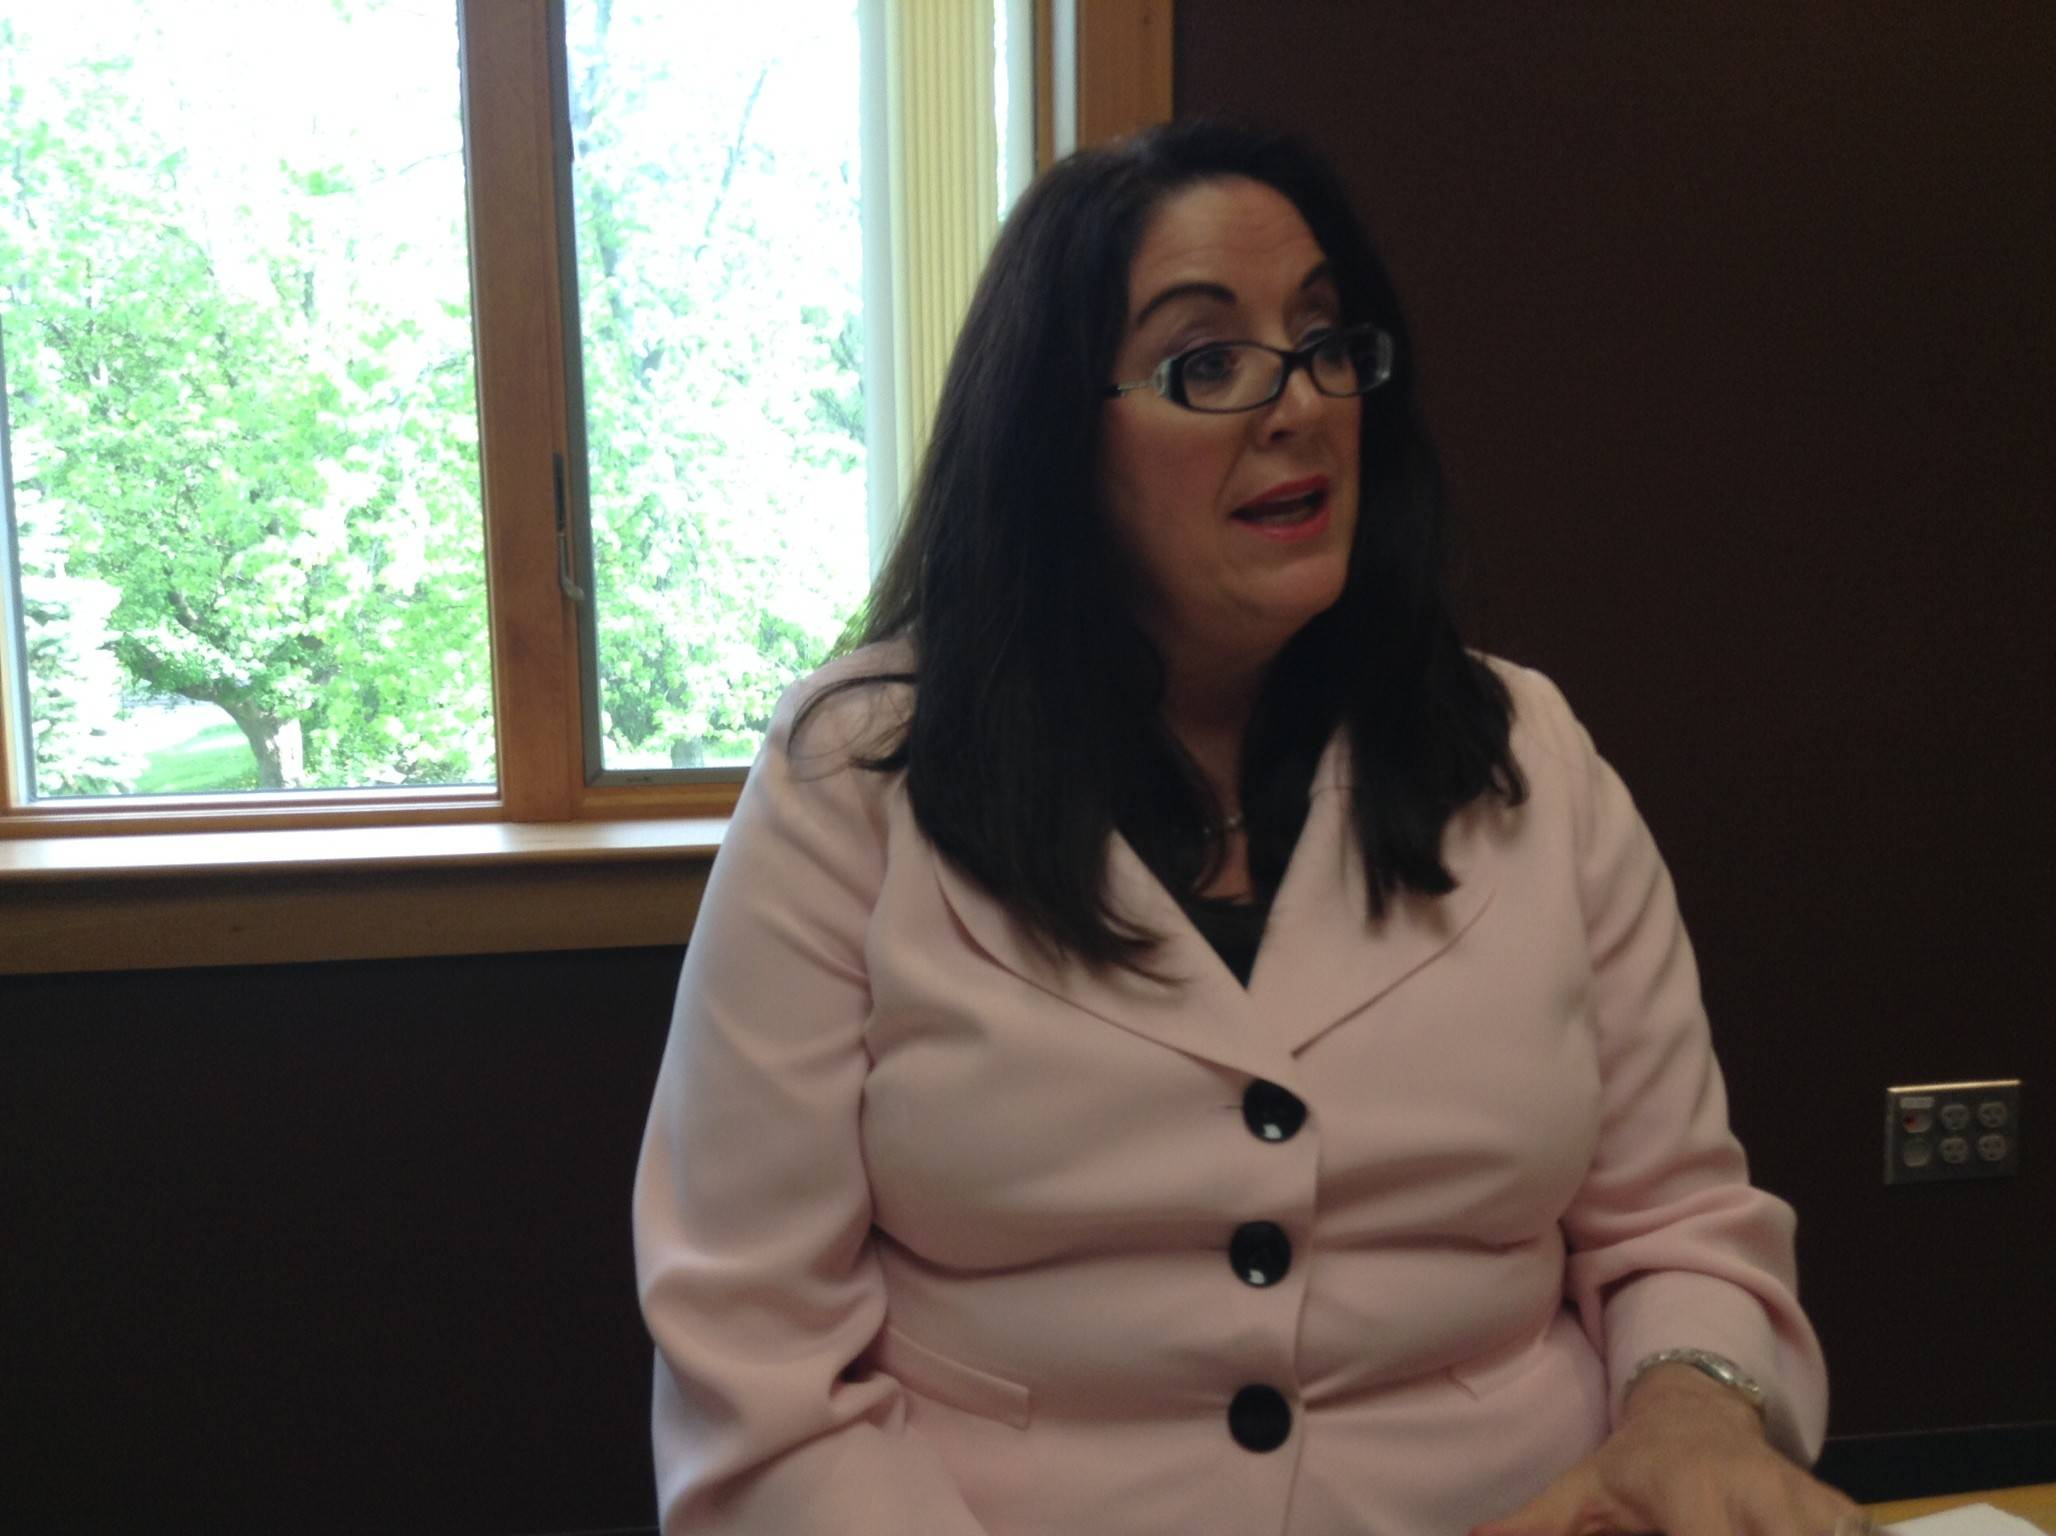 Woodland Elementary District 50 Superintendent Joy Swoboda discusses a lawsuit challenging a state agency's decision allowing Prairie Crossing Charter School in Grayslake to operate for another five years.